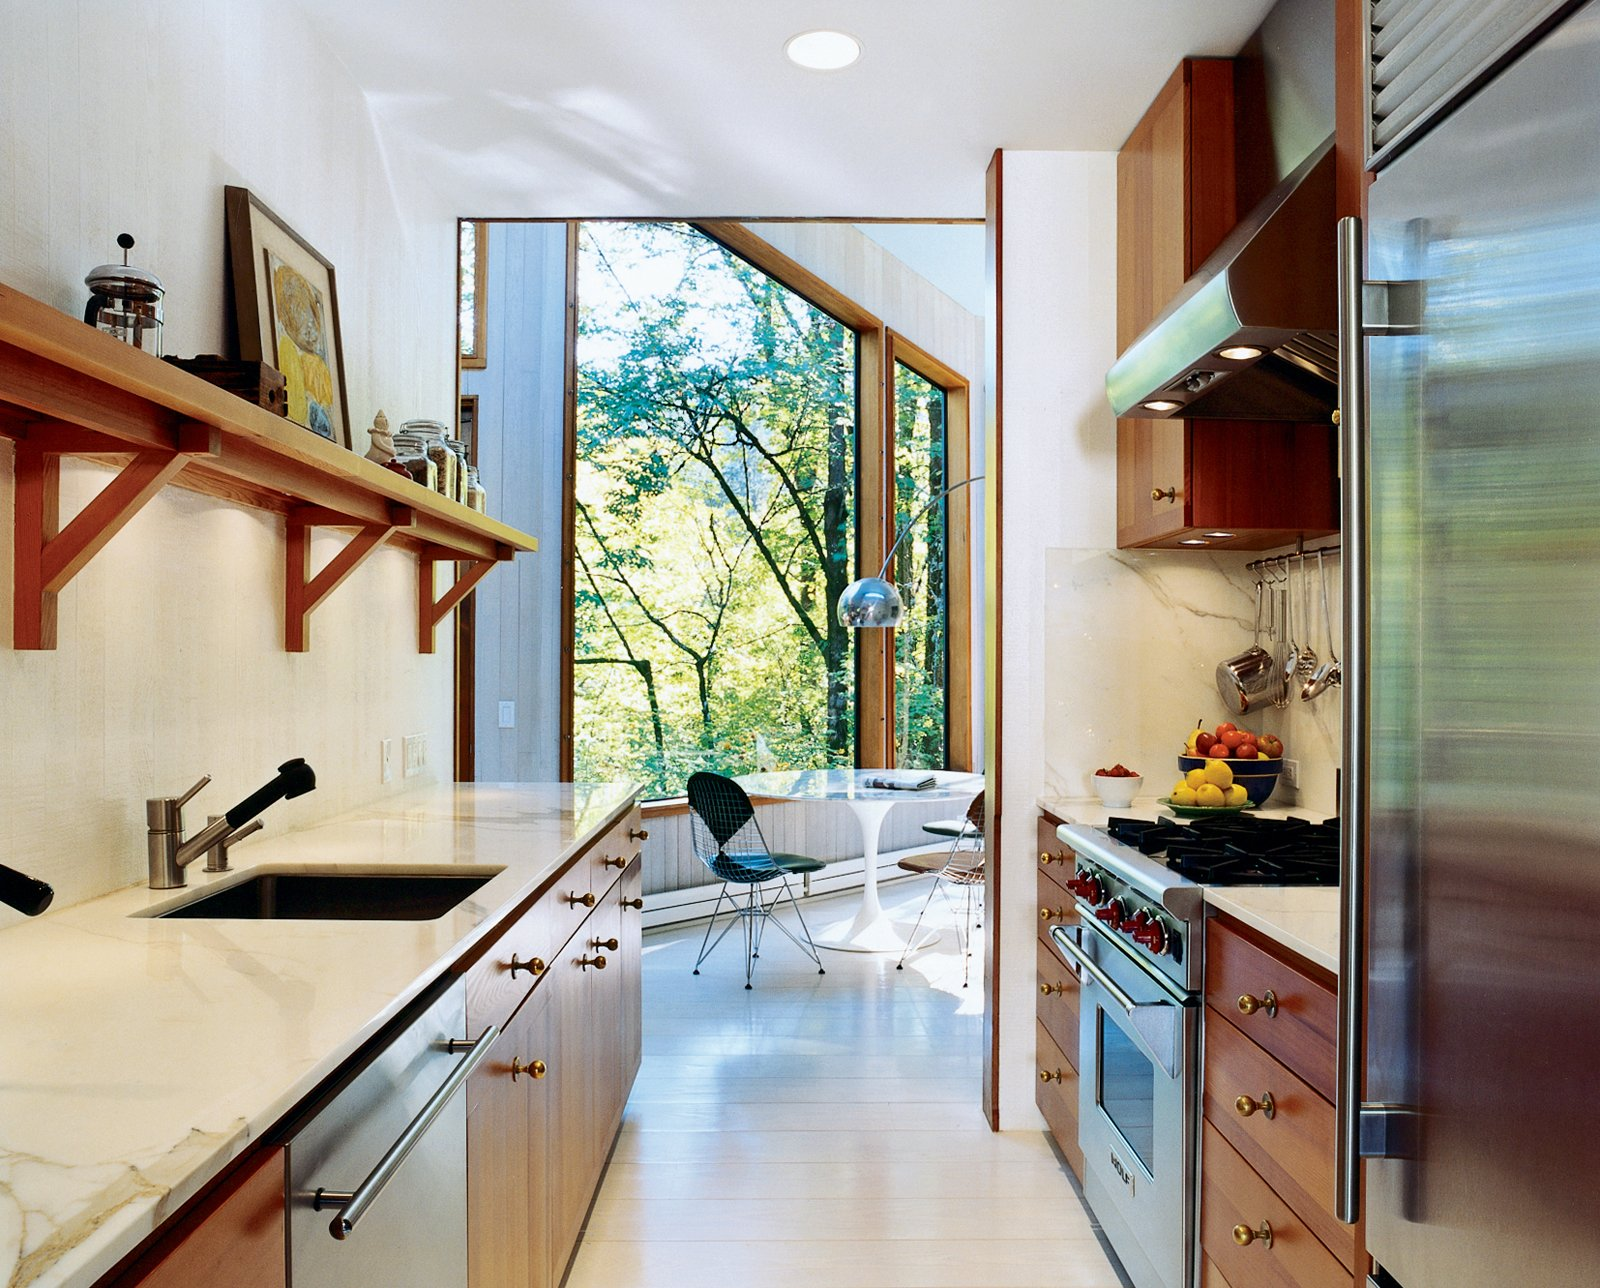 To brighten the kitchen, which was once the darkest room, Watson and Tschopp decided on a glossy white finish, painted directly on the same rough-cut cedar paneling used throughout the house. This maintains the consistency of materials and texture, while reflecting light and enhancing the natural illumination. Stainless steel appliances and vintage bronze hardware add luster. Super White semigloss (walls) and Old Pick Up Blue (ceilings) are by Benjamin Moore. Tagged: Kitchen, Marble Counter, Refrigerator, Range, and Marble Backsplashe.  Photo 3 of 6 in The Pace of Portland